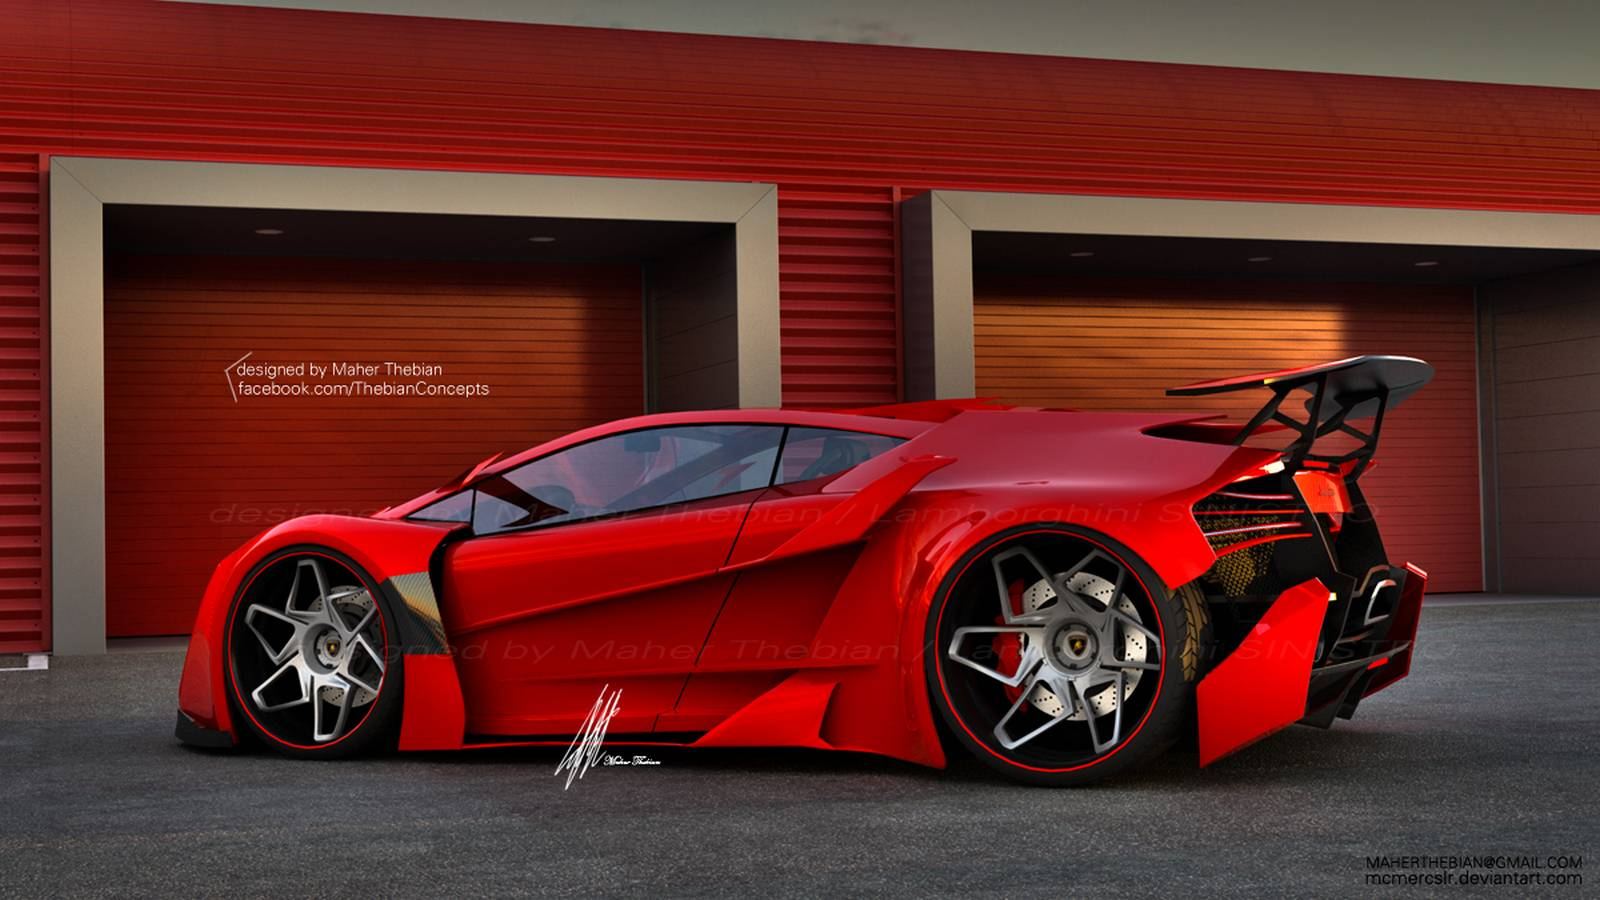 Superieur Render: Lamborghini Sinistro By Maher Thebian